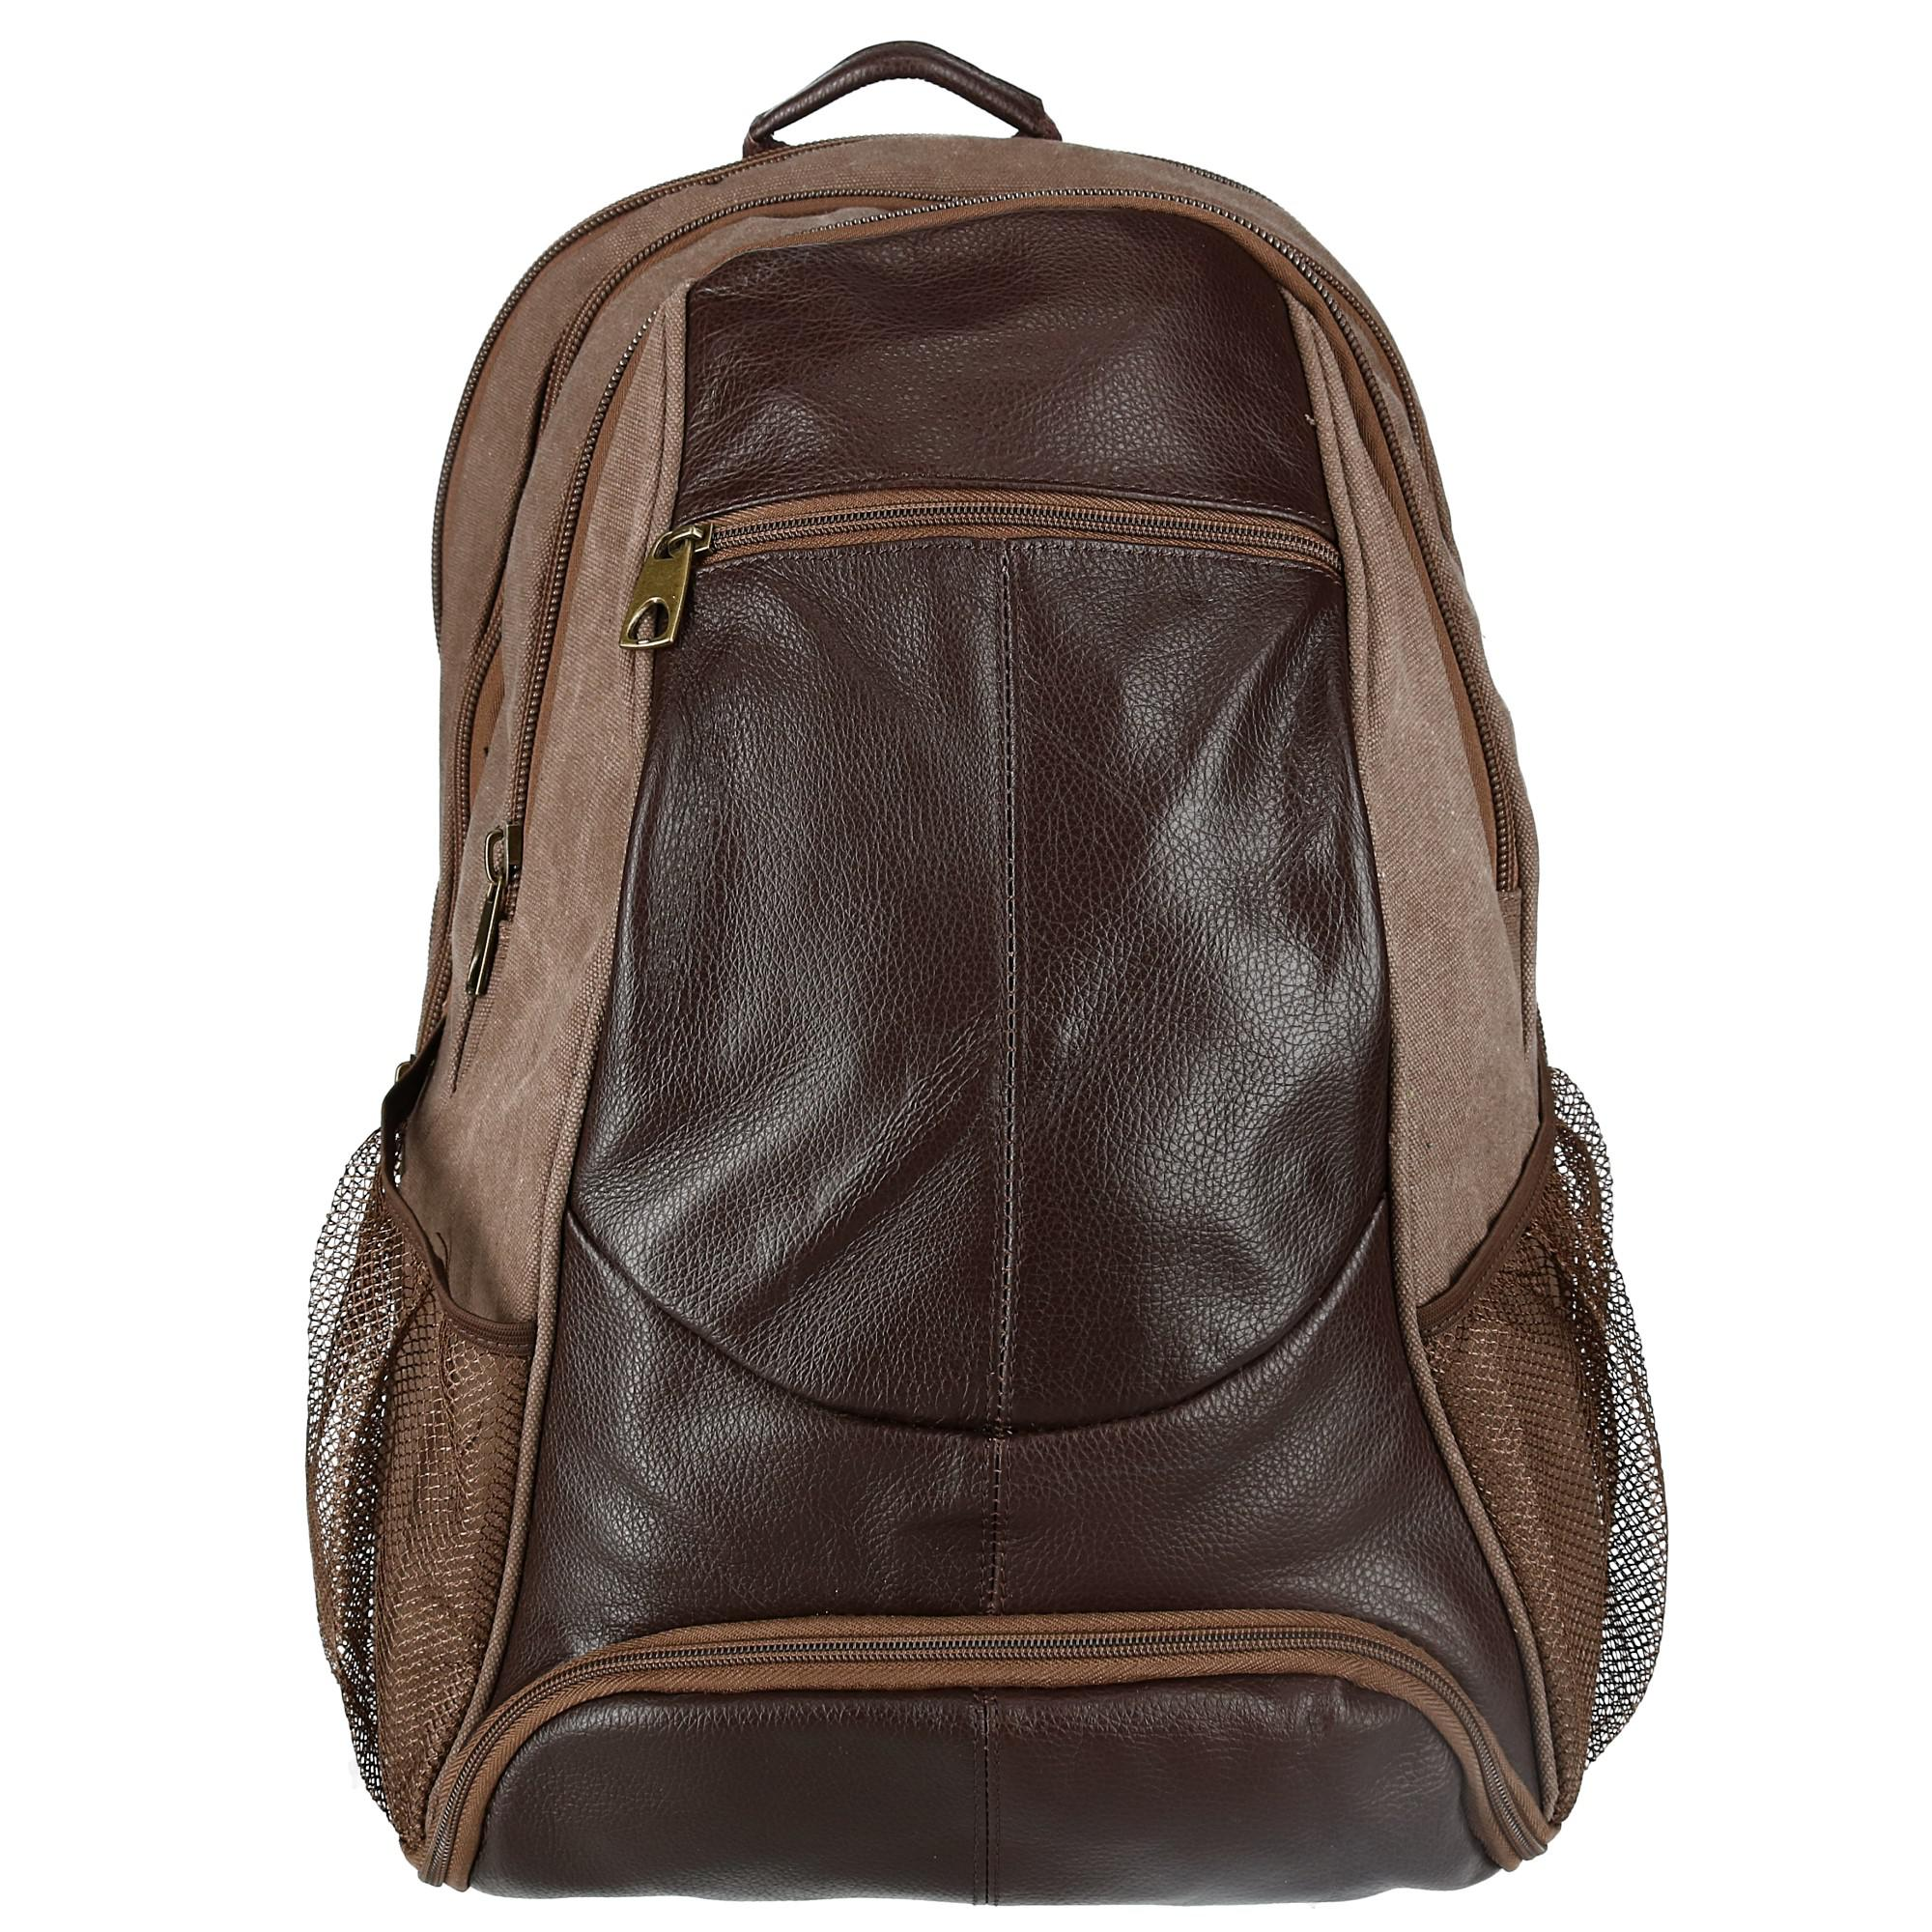 New CTM Men s Leather and Canvas Backpack with Laptop and Shoe ... 41149f5900